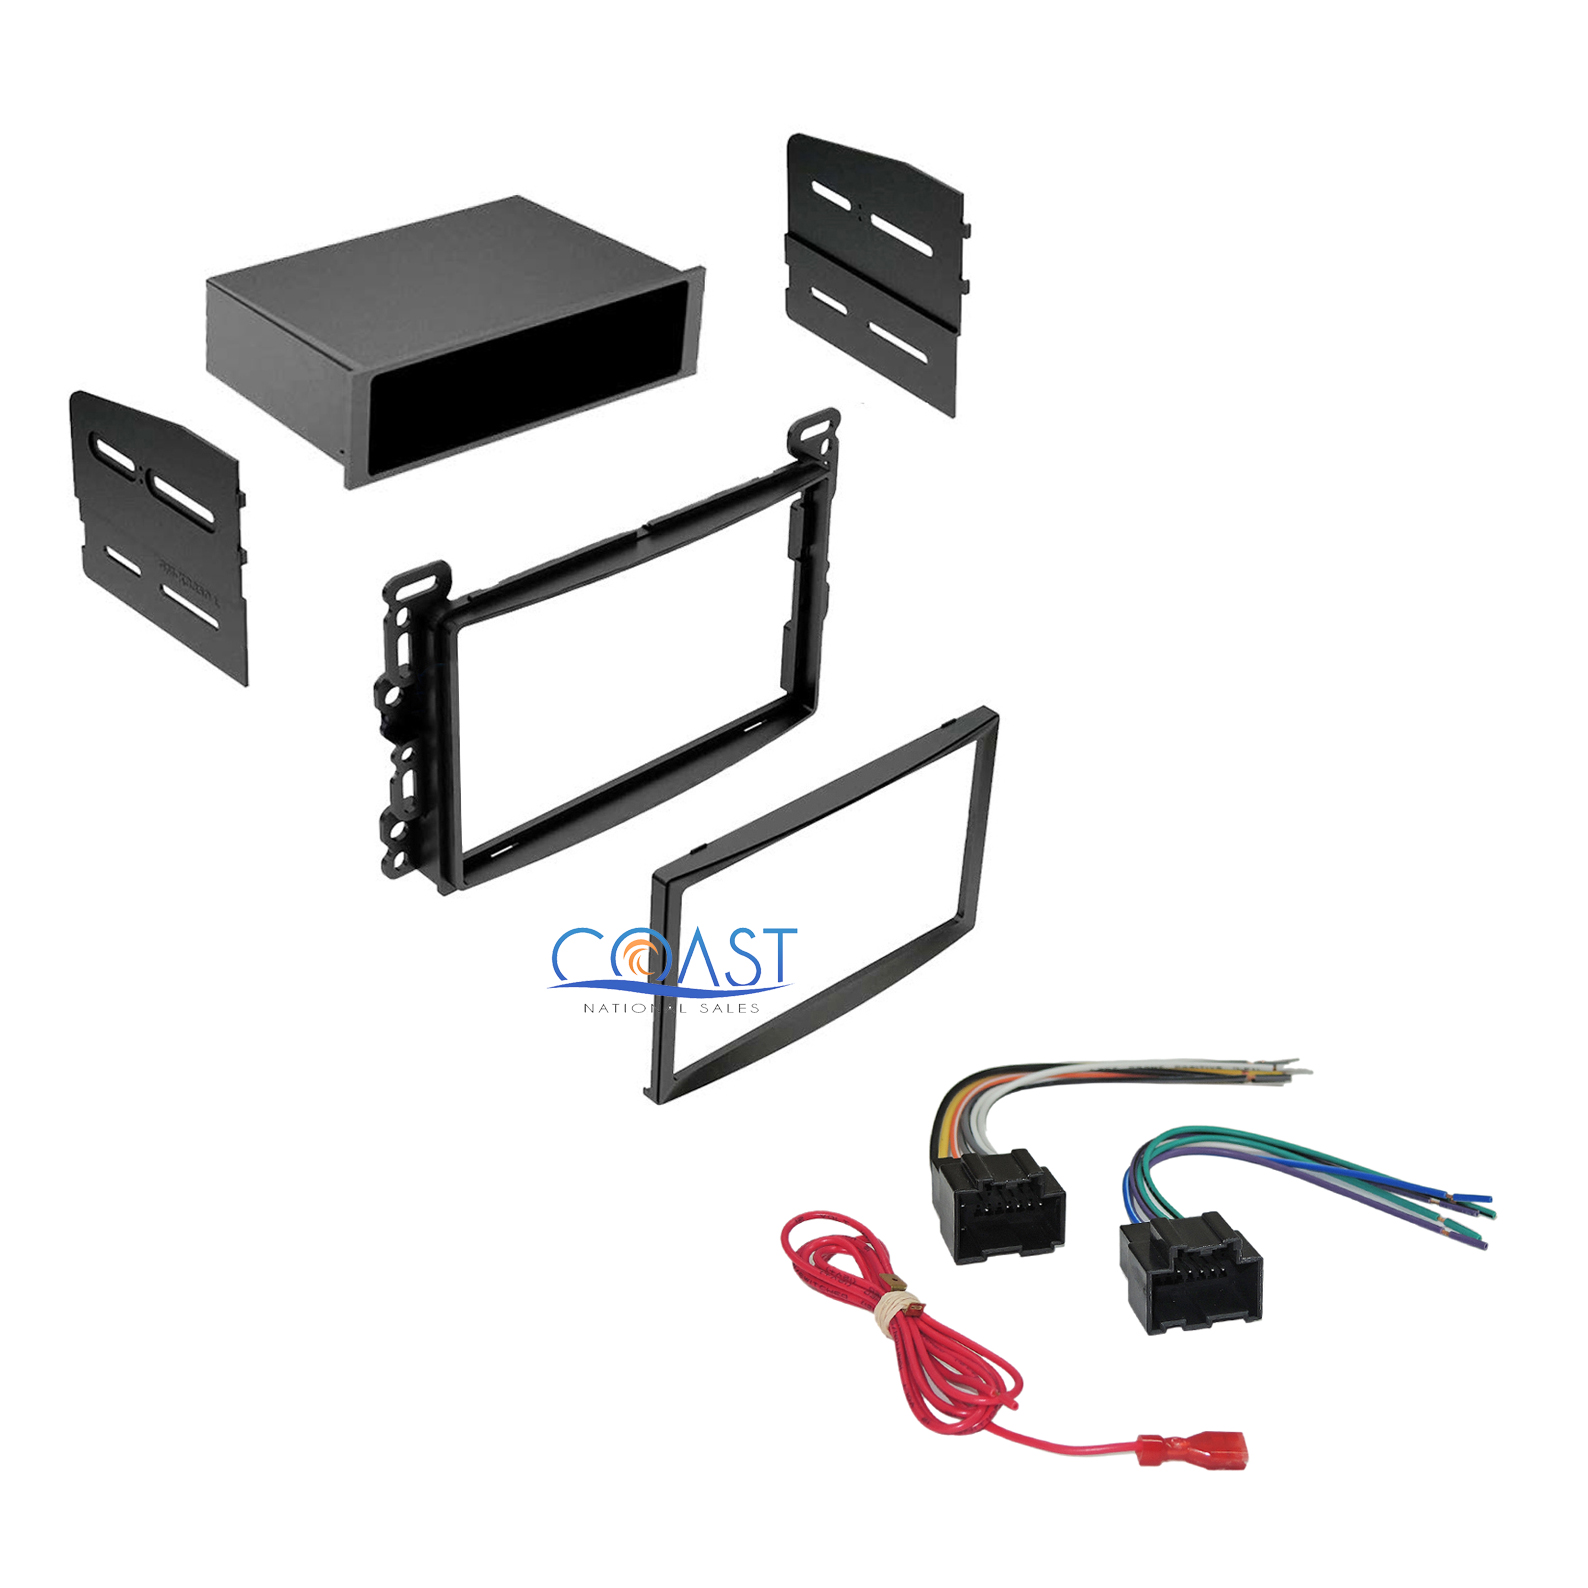 Wiring Harness Kit For Radio : Car radio stereo dash kit w wiring harness for